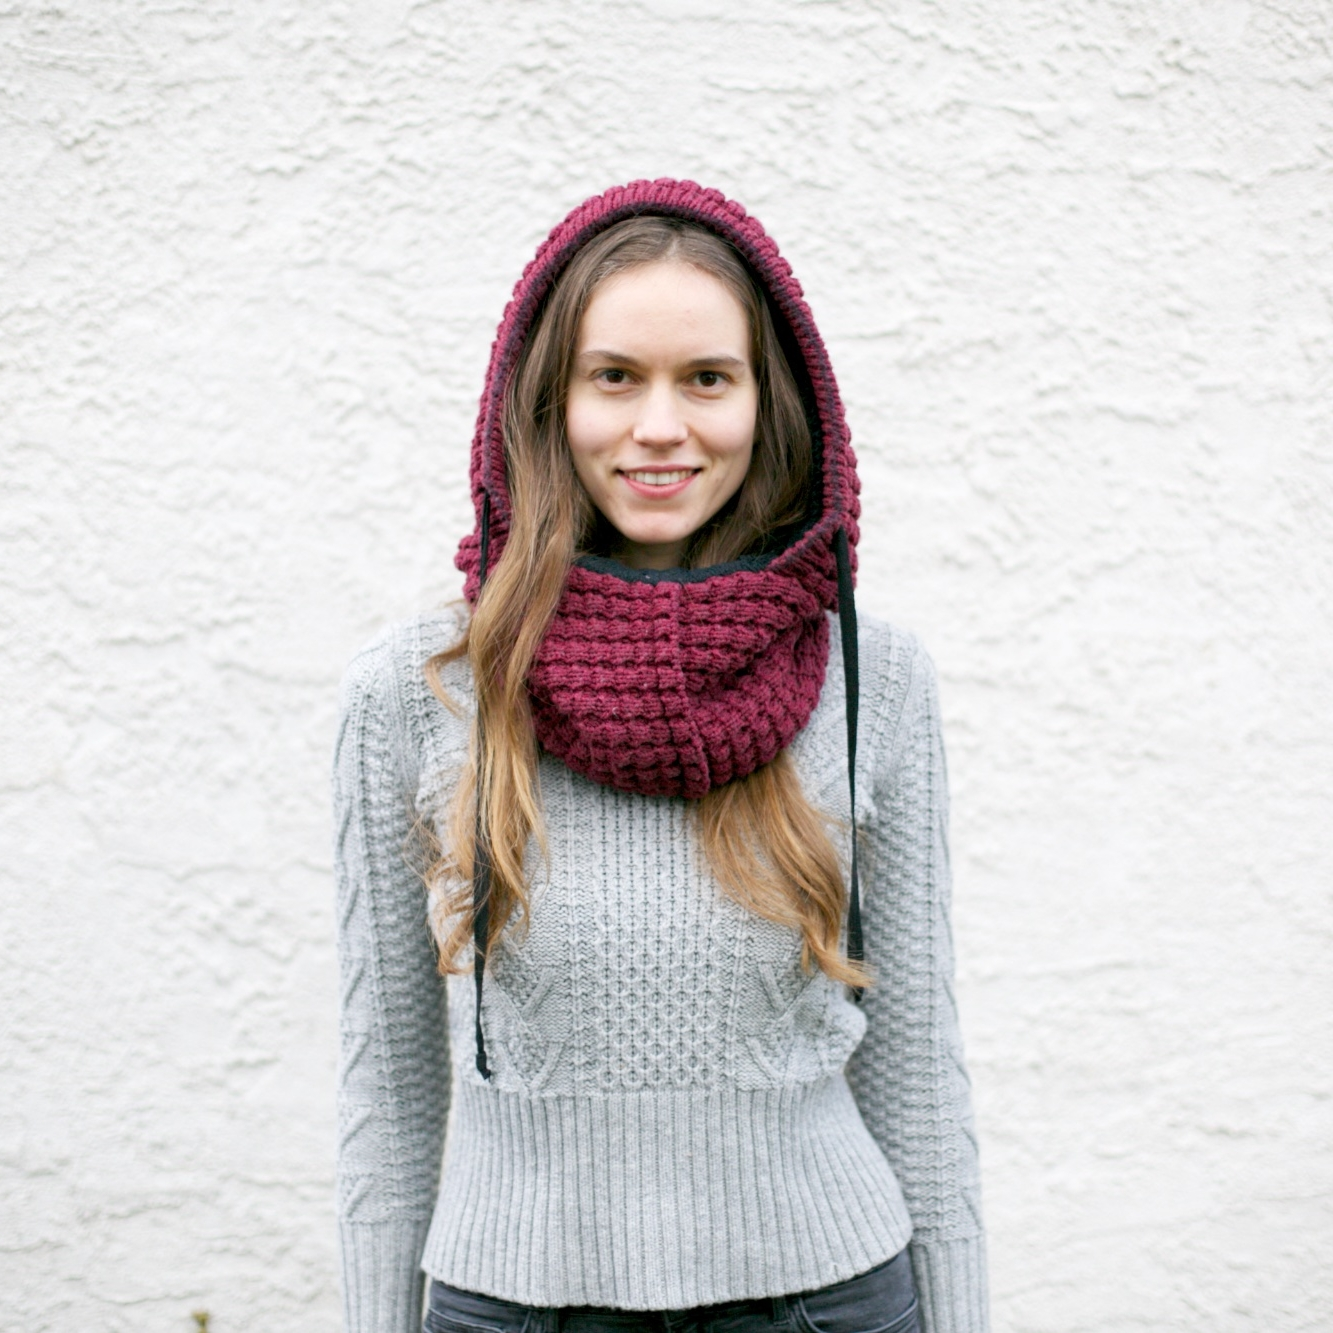 Woman Entrepreneur and Main Line Philadelphia Business Consultant Avi Loren Fox in Wild Mantle Hooded Scarf